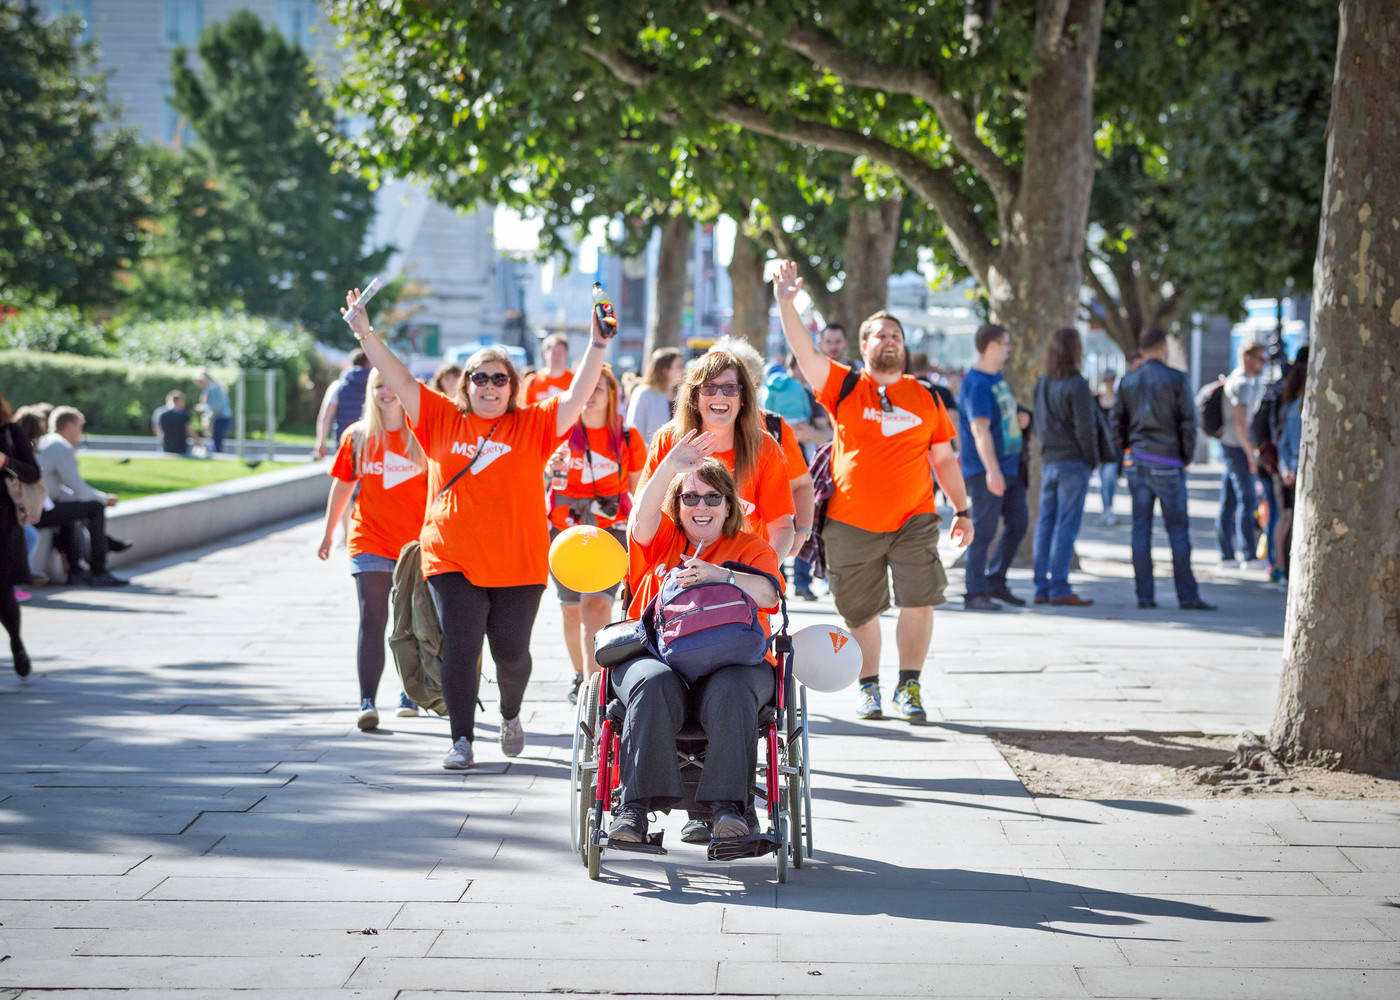 MS Society members walking for an event.